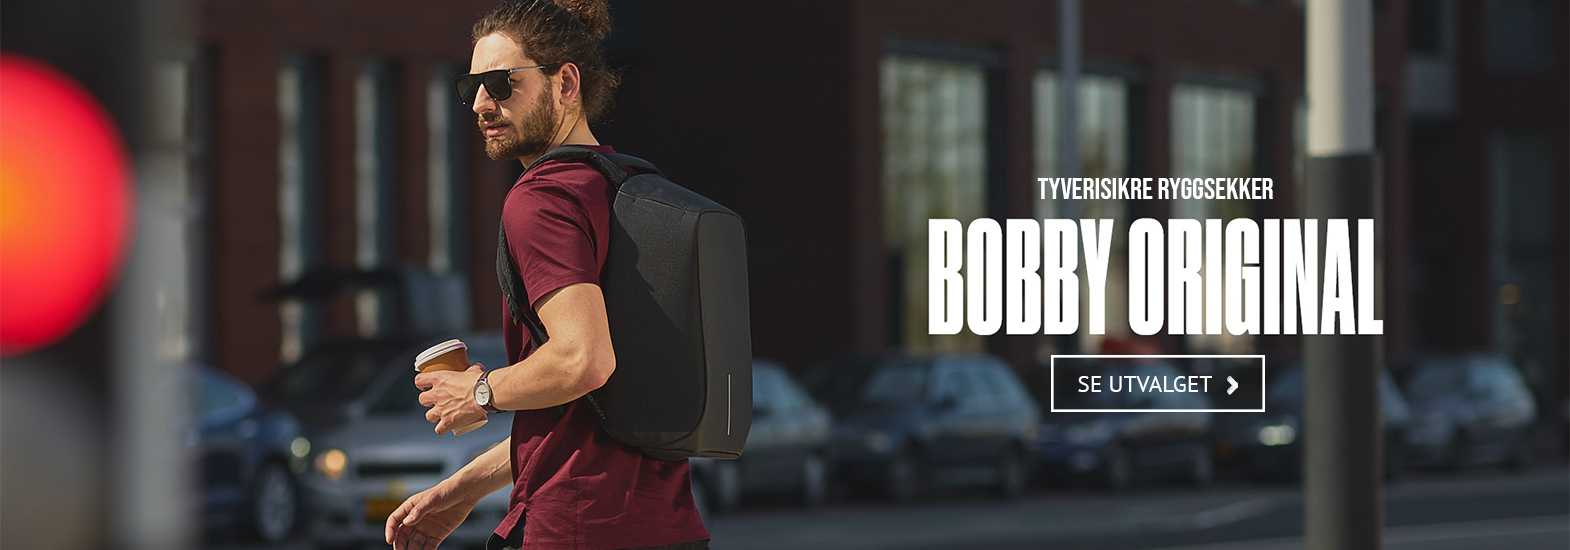 bobby tyverisikker ryggsekk xd design anti theft backpack